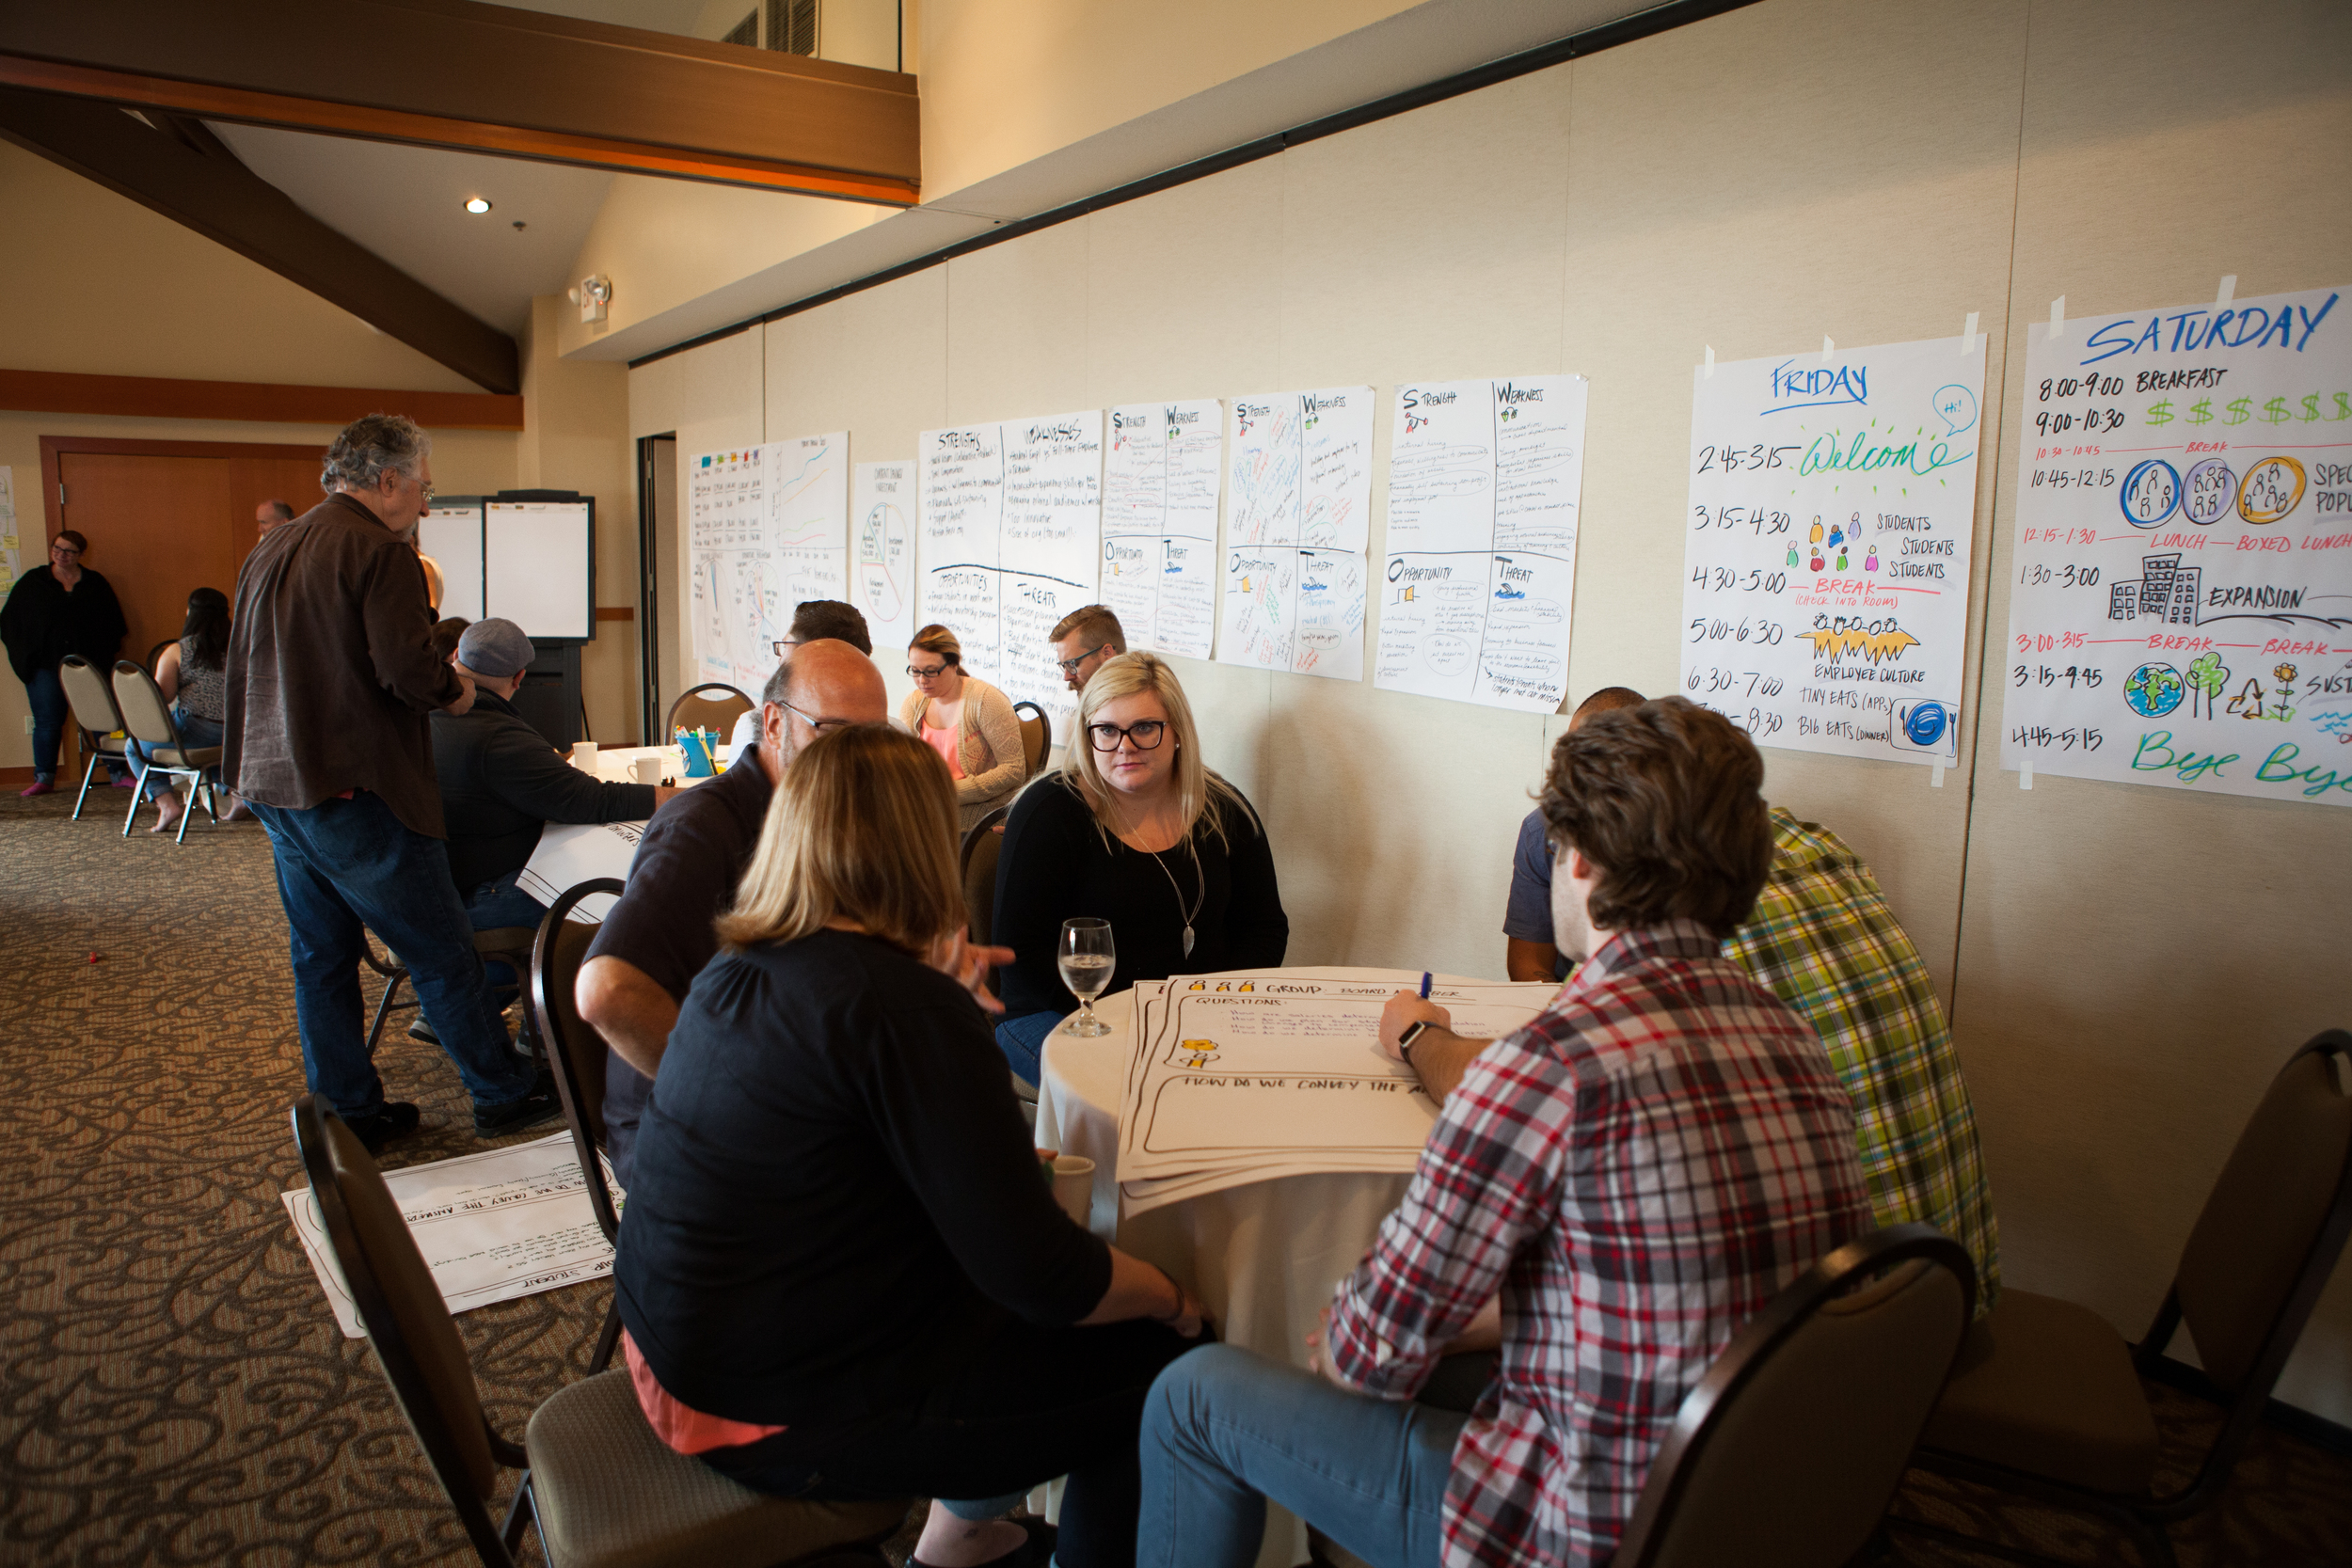 For the board retreat, we designed a series of engagements to help the Executive Director and participants gain insight on high level questions the organization was working toward answering. We used a variety of templates to capture thoughts, ideas, and concerns.